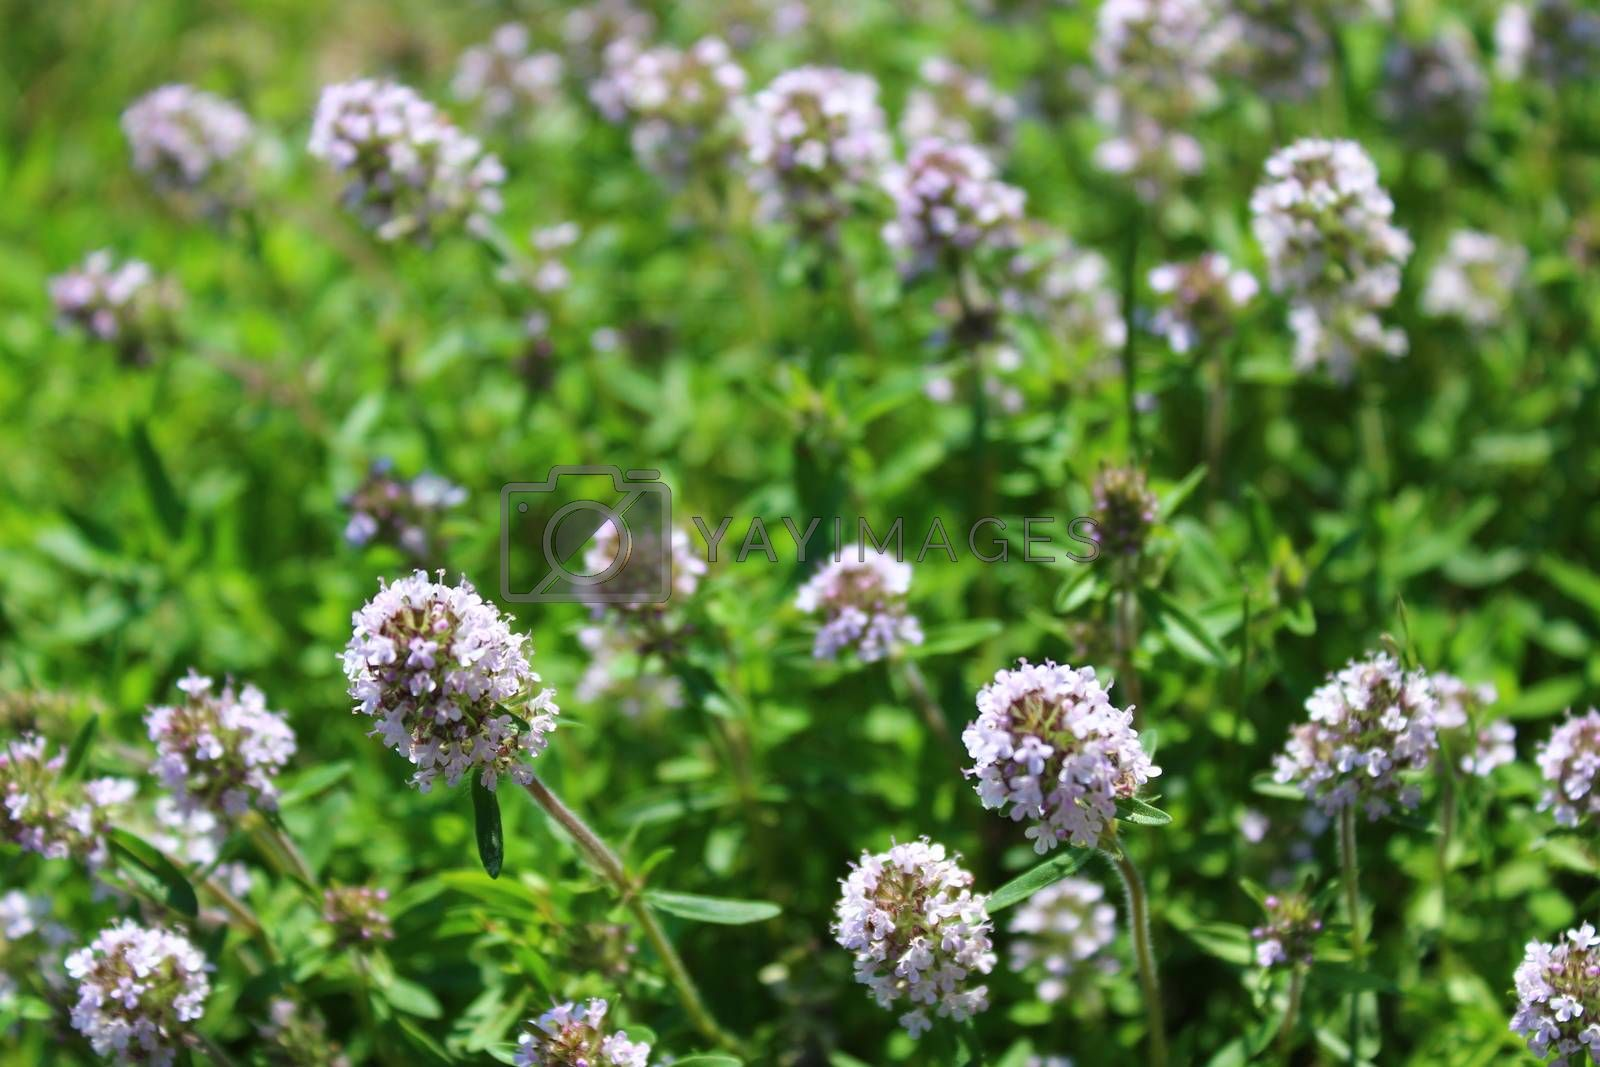 Royalty free image of blooming thyme in the garden by martina_unbehauen